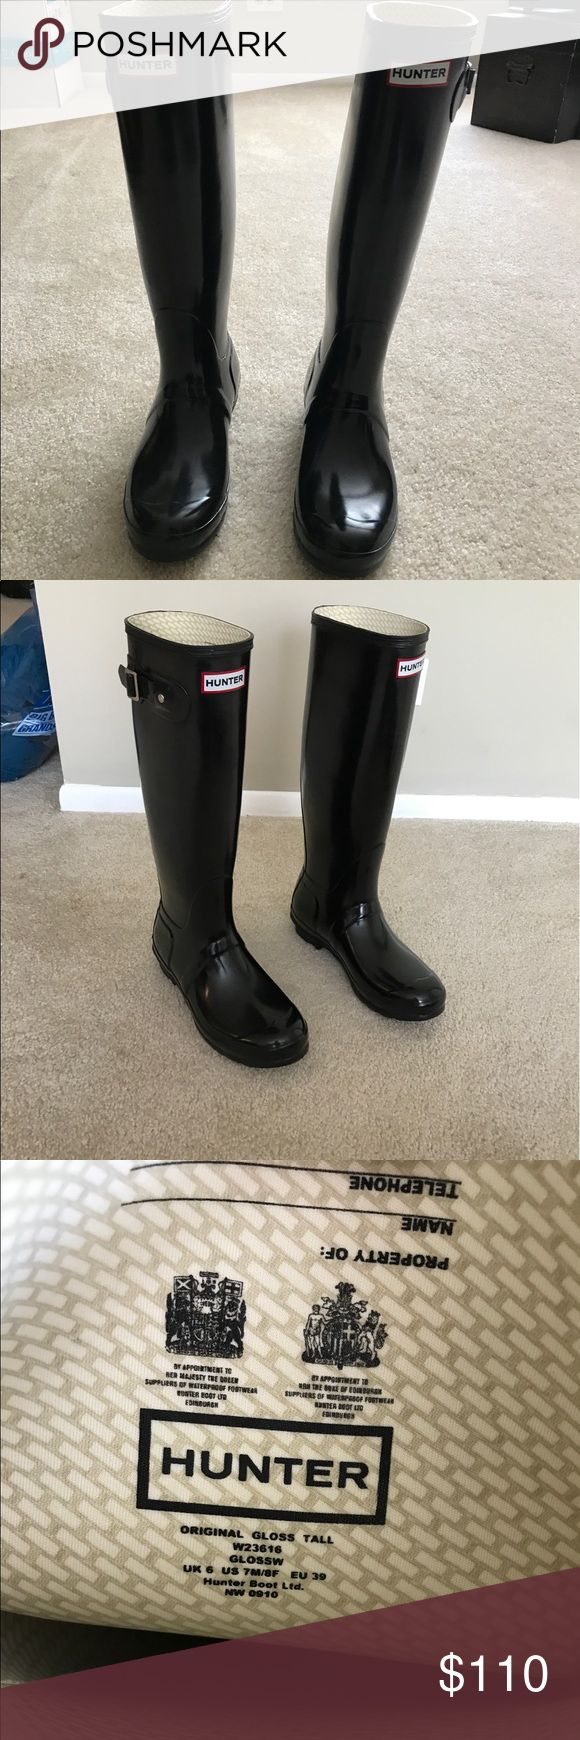 Black Gloss Hunter Boots/ Side Buckle. Classic Black Hunters. Worn once! Glossy and awesome. :) Hunter Boots Shoes Winter & Rain Boots